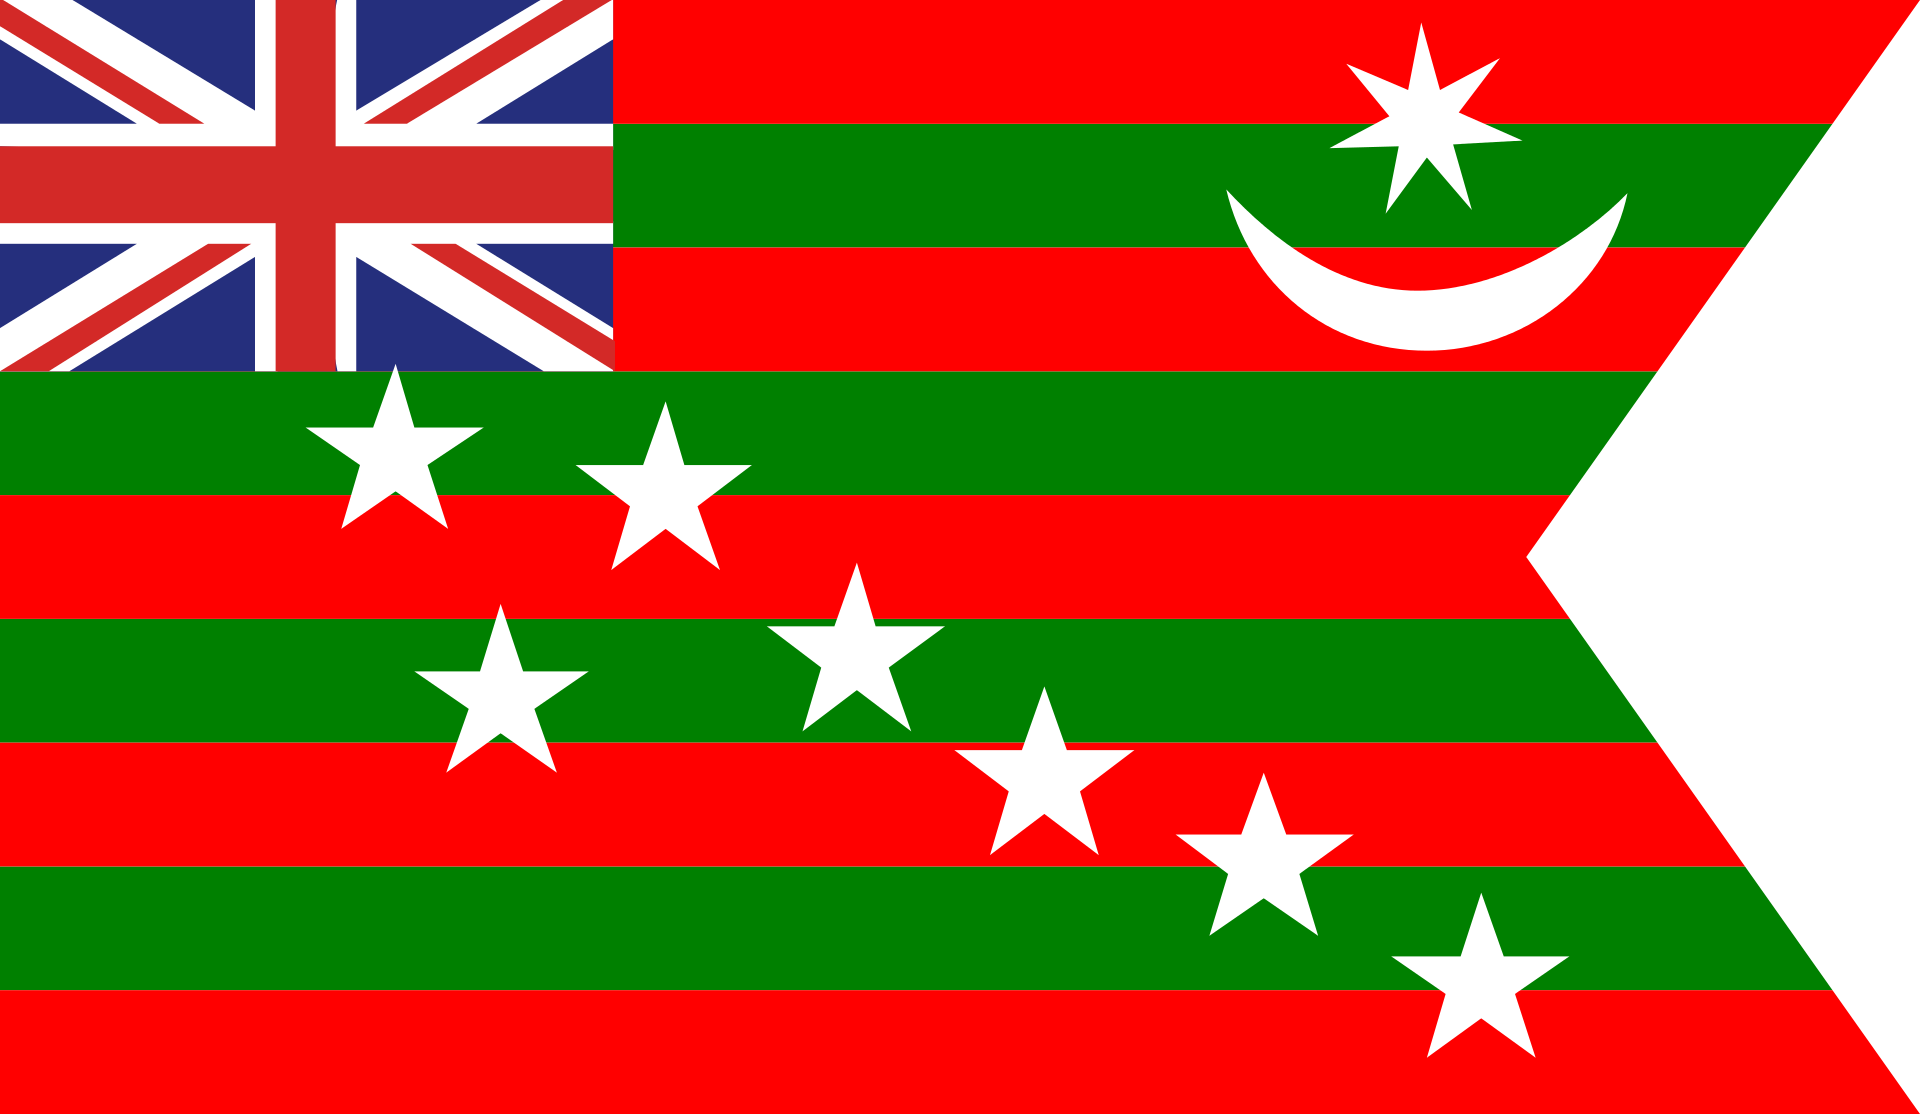 Home Rule Flag of India